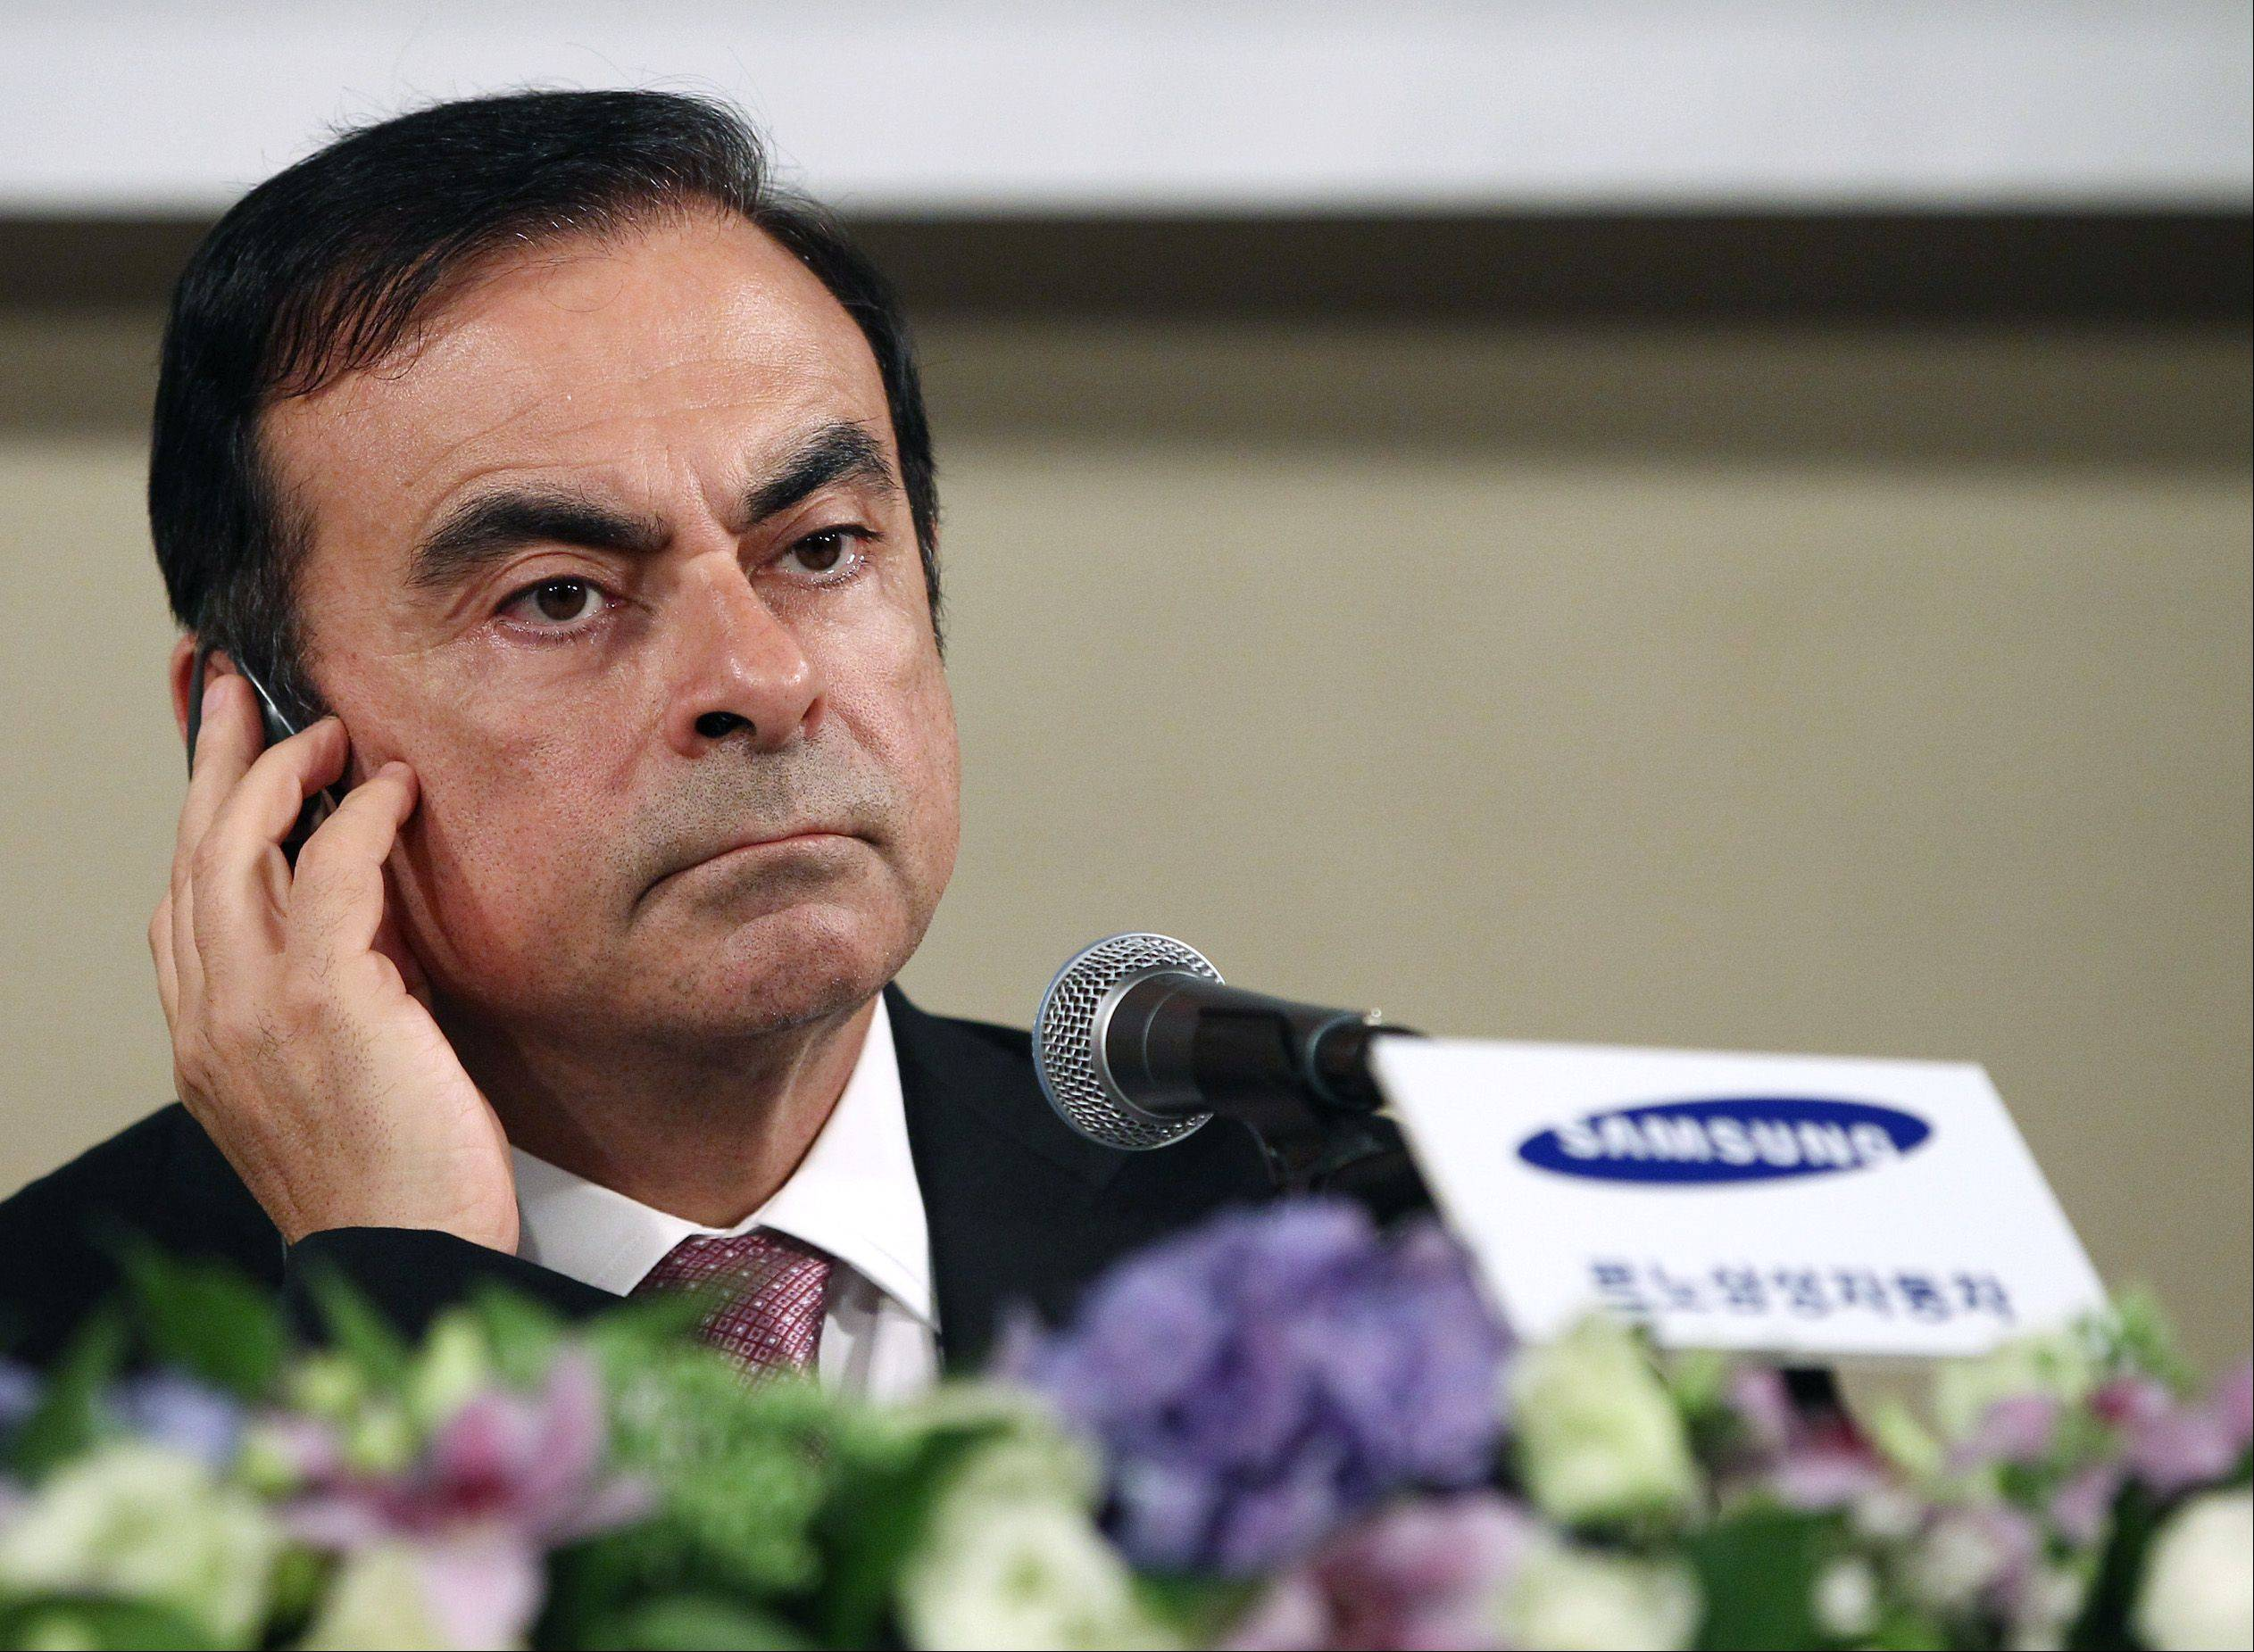 Nissan Motor Co. Chief Executive Officer Carlos Ghosn said he expects Europe's auto industry to take many years to recover from shrinking demand and excess capacity.